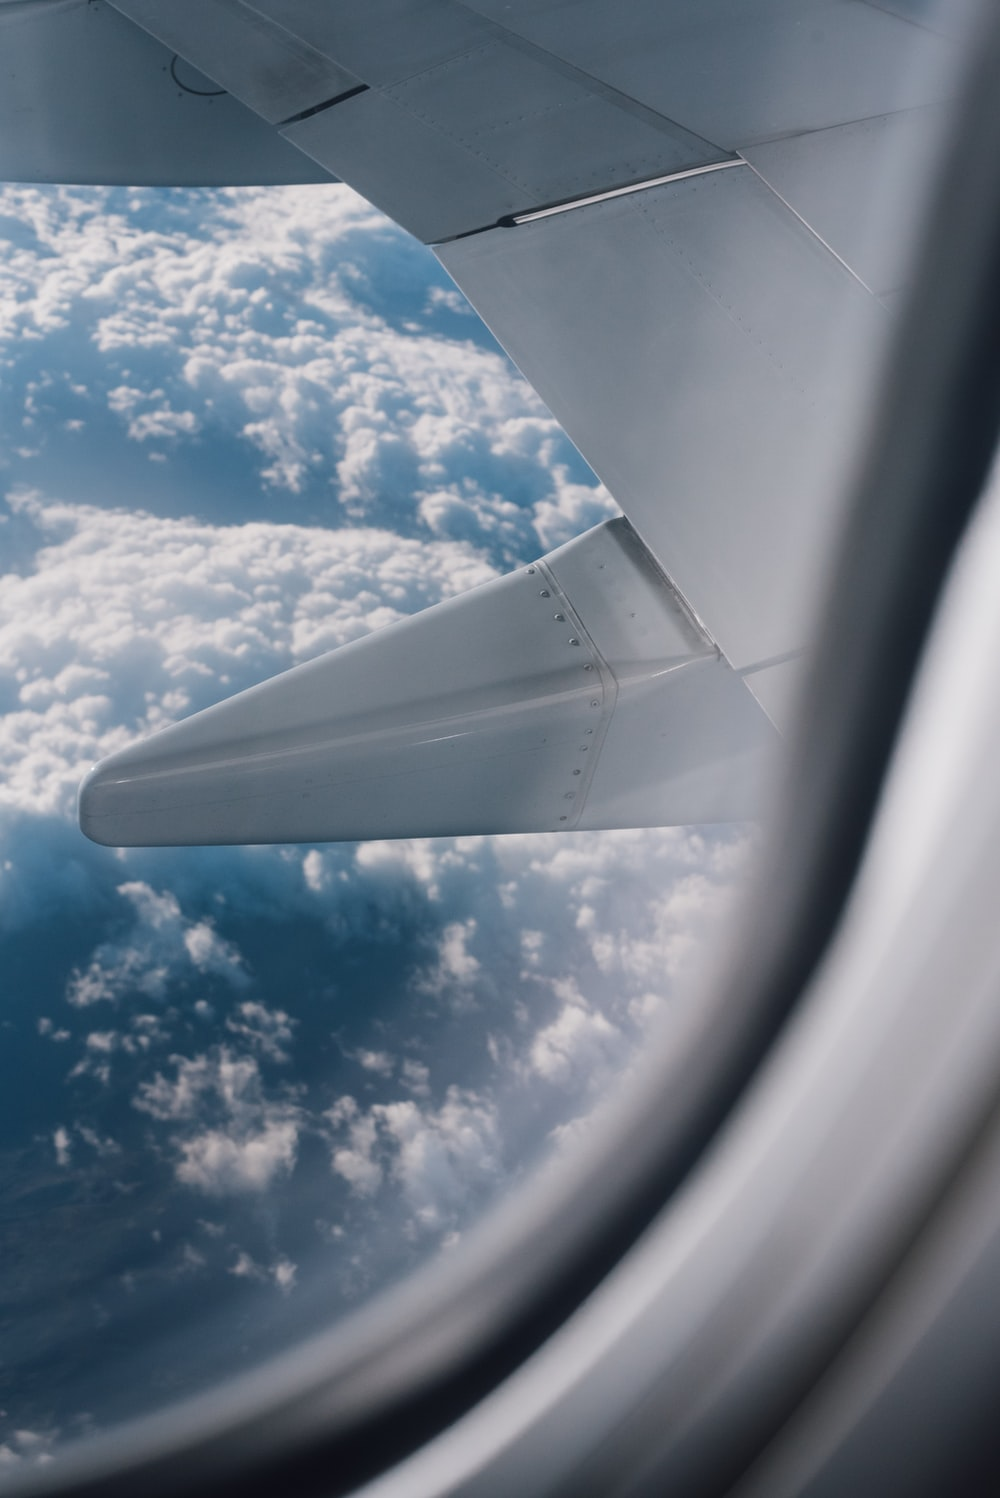 clear glass airliner window